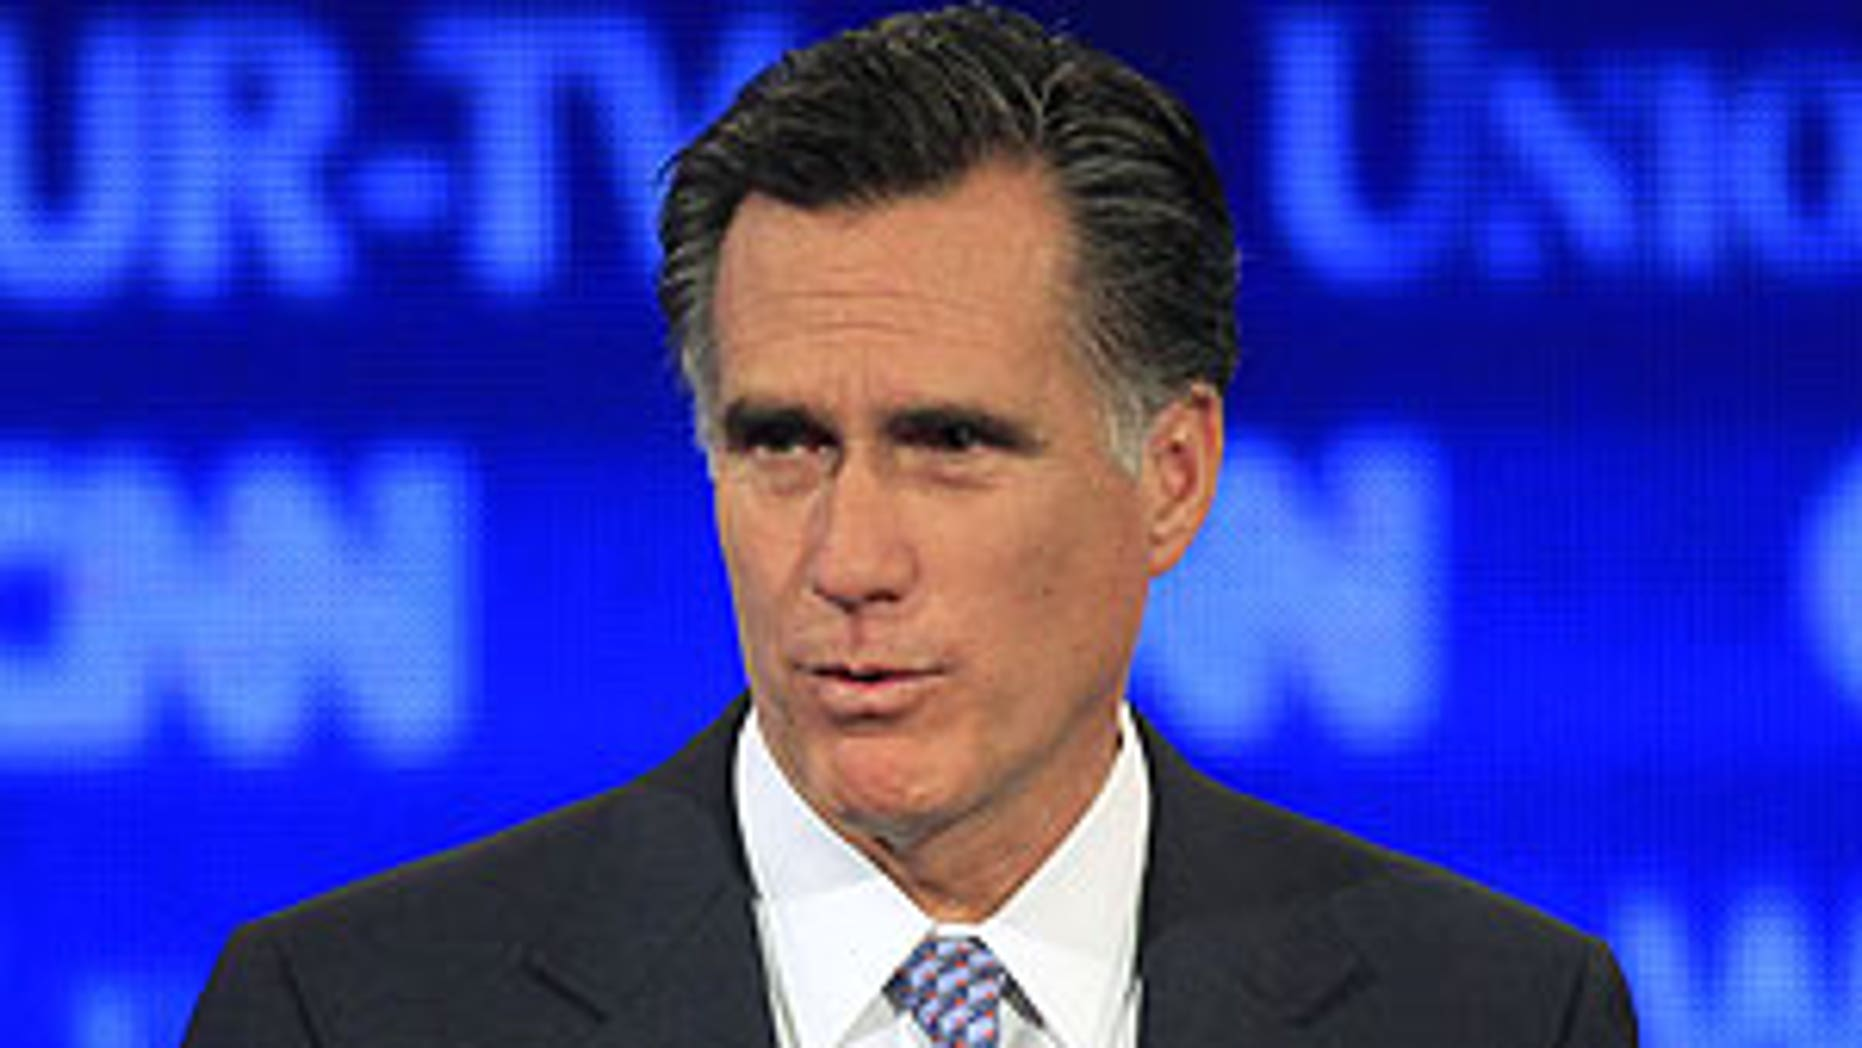 June 13: Former Massachusetts Gov. Mitt Romney answers a question during the first New Hampshire Republican presidential debate at St. Anselm College in Manchester, N.H.